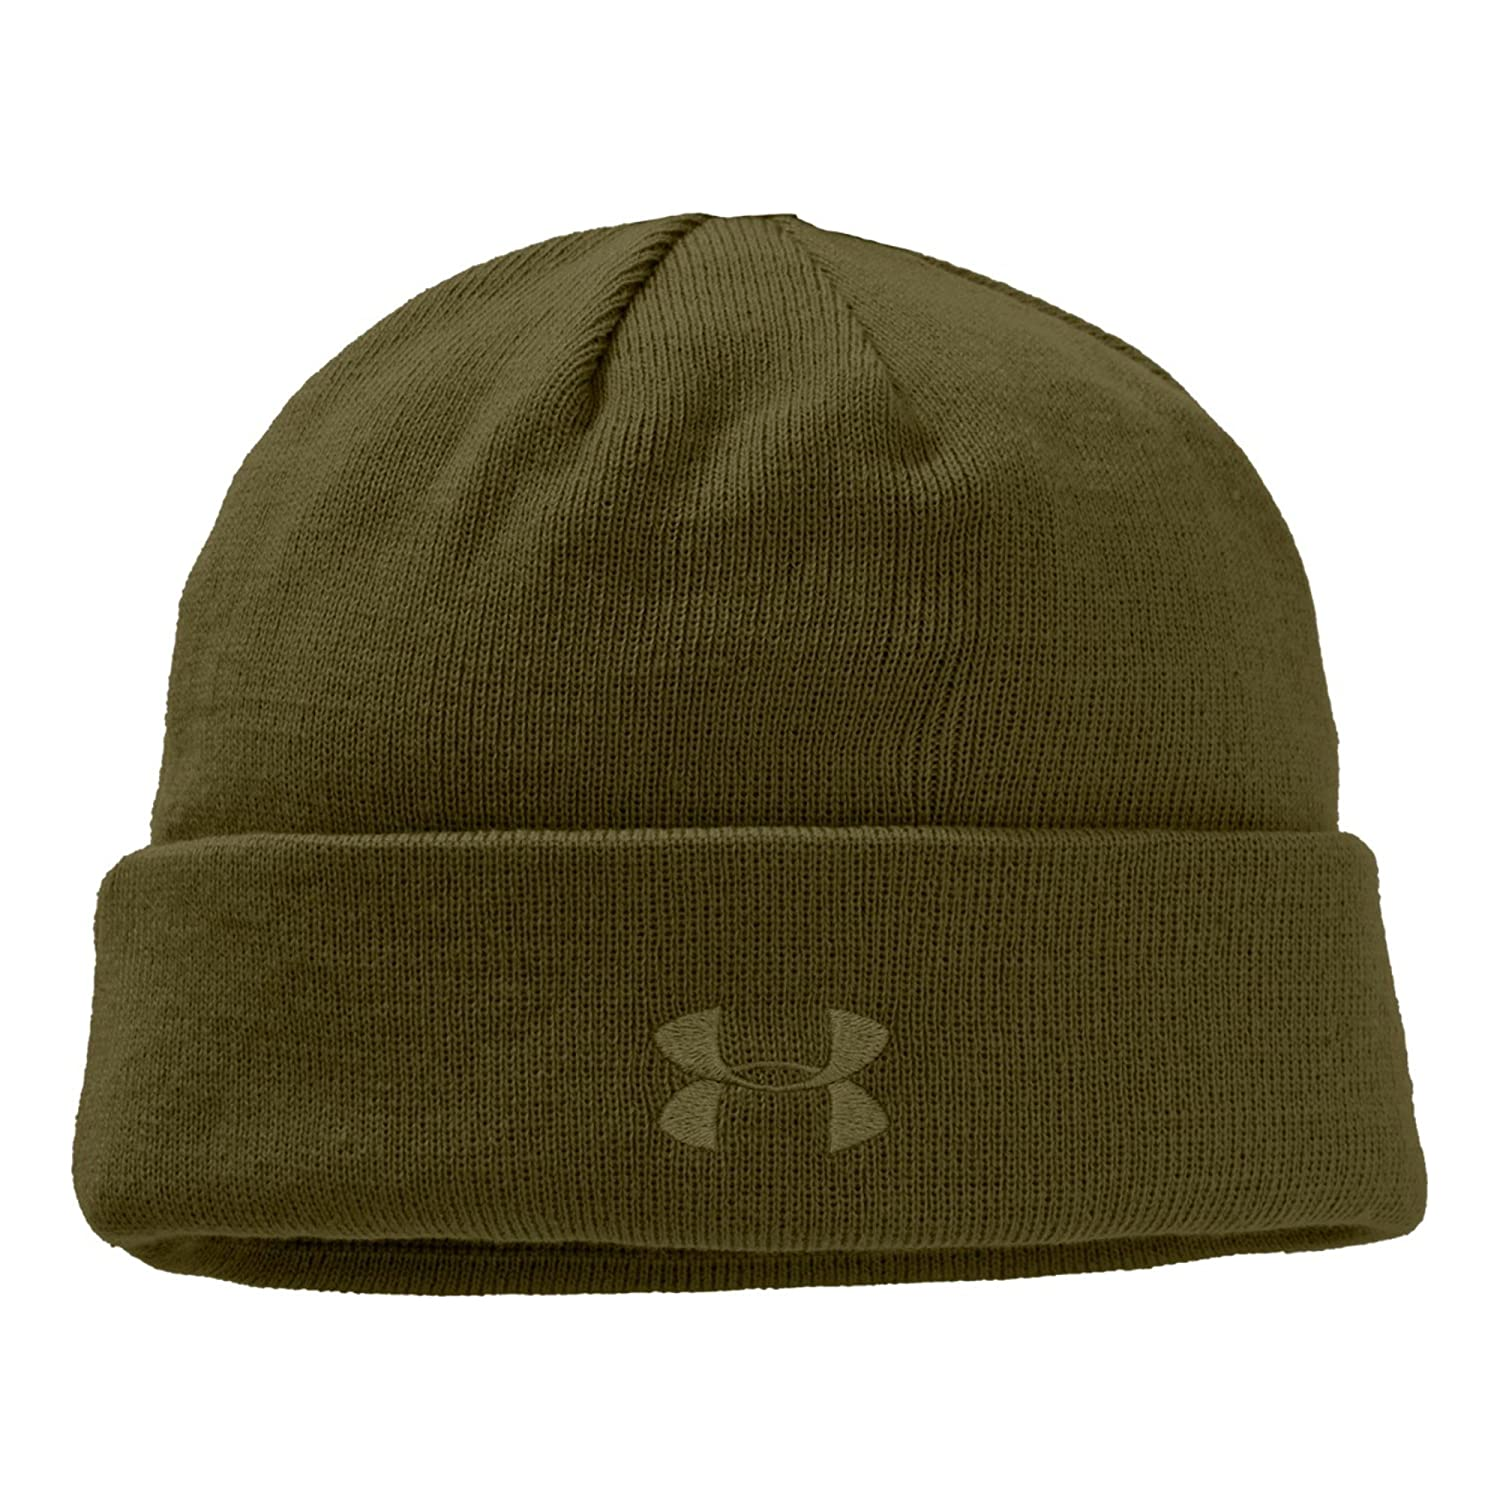 Under Armour Tactical Stealth Beanie Hat - Olive 422e04ca8d1